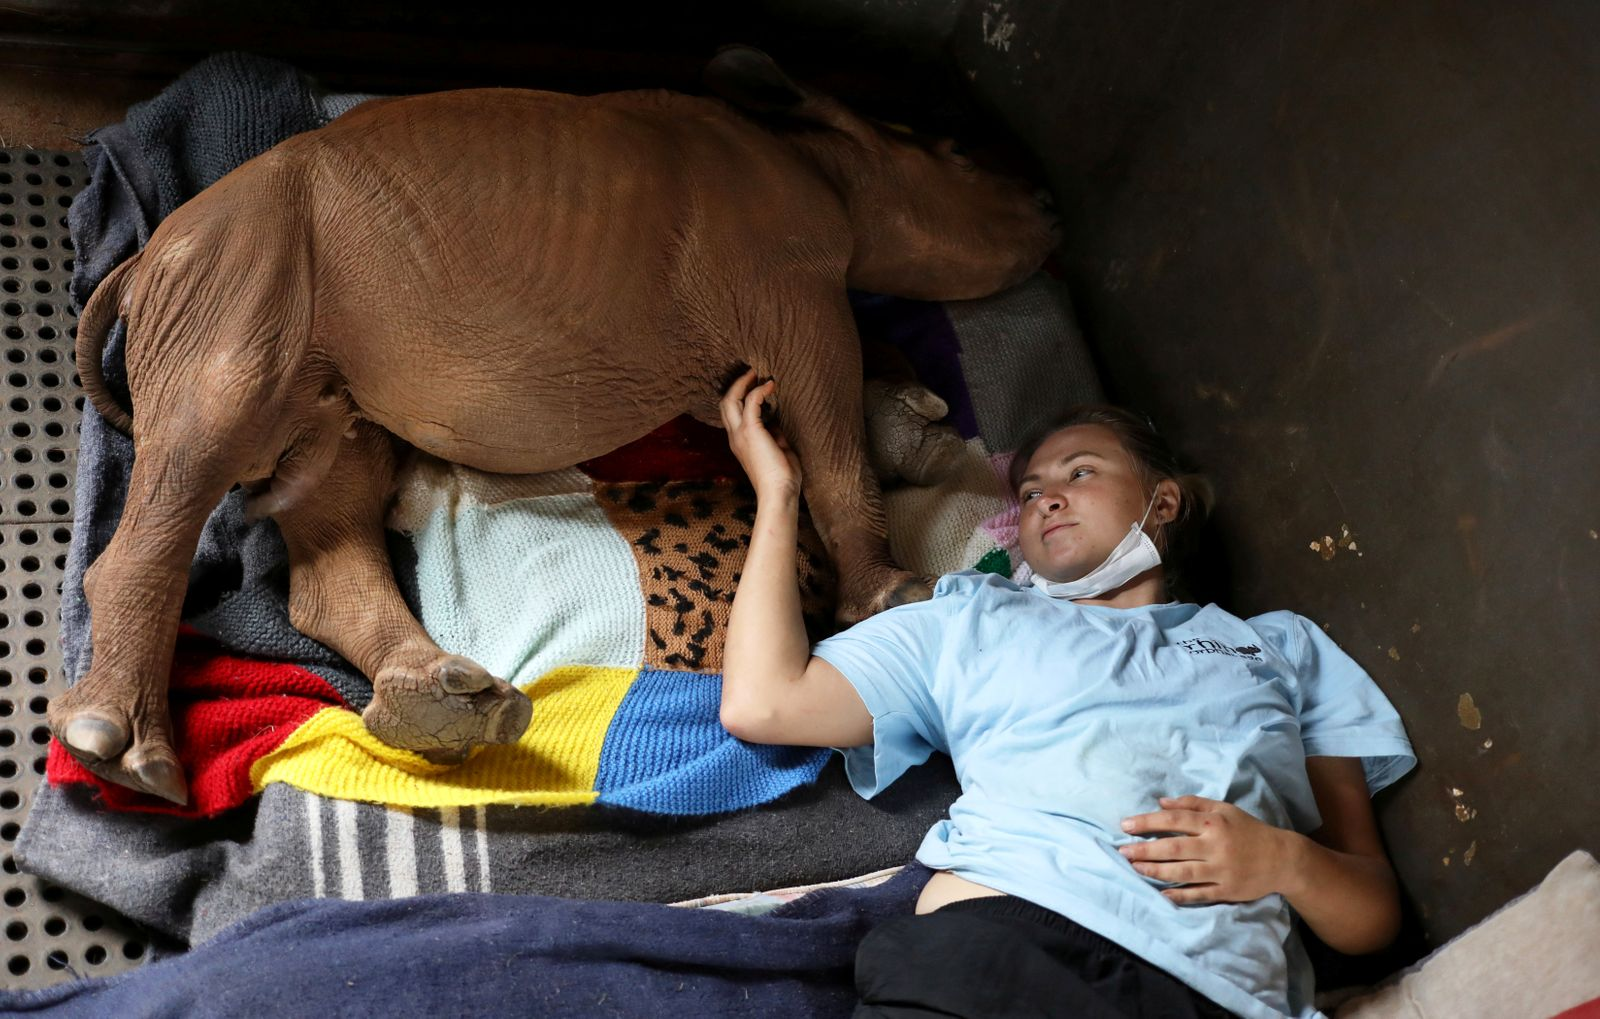 Larize Nel, a volunteer lies next to Mapimpi, an orphaned rhino in Mookgopong